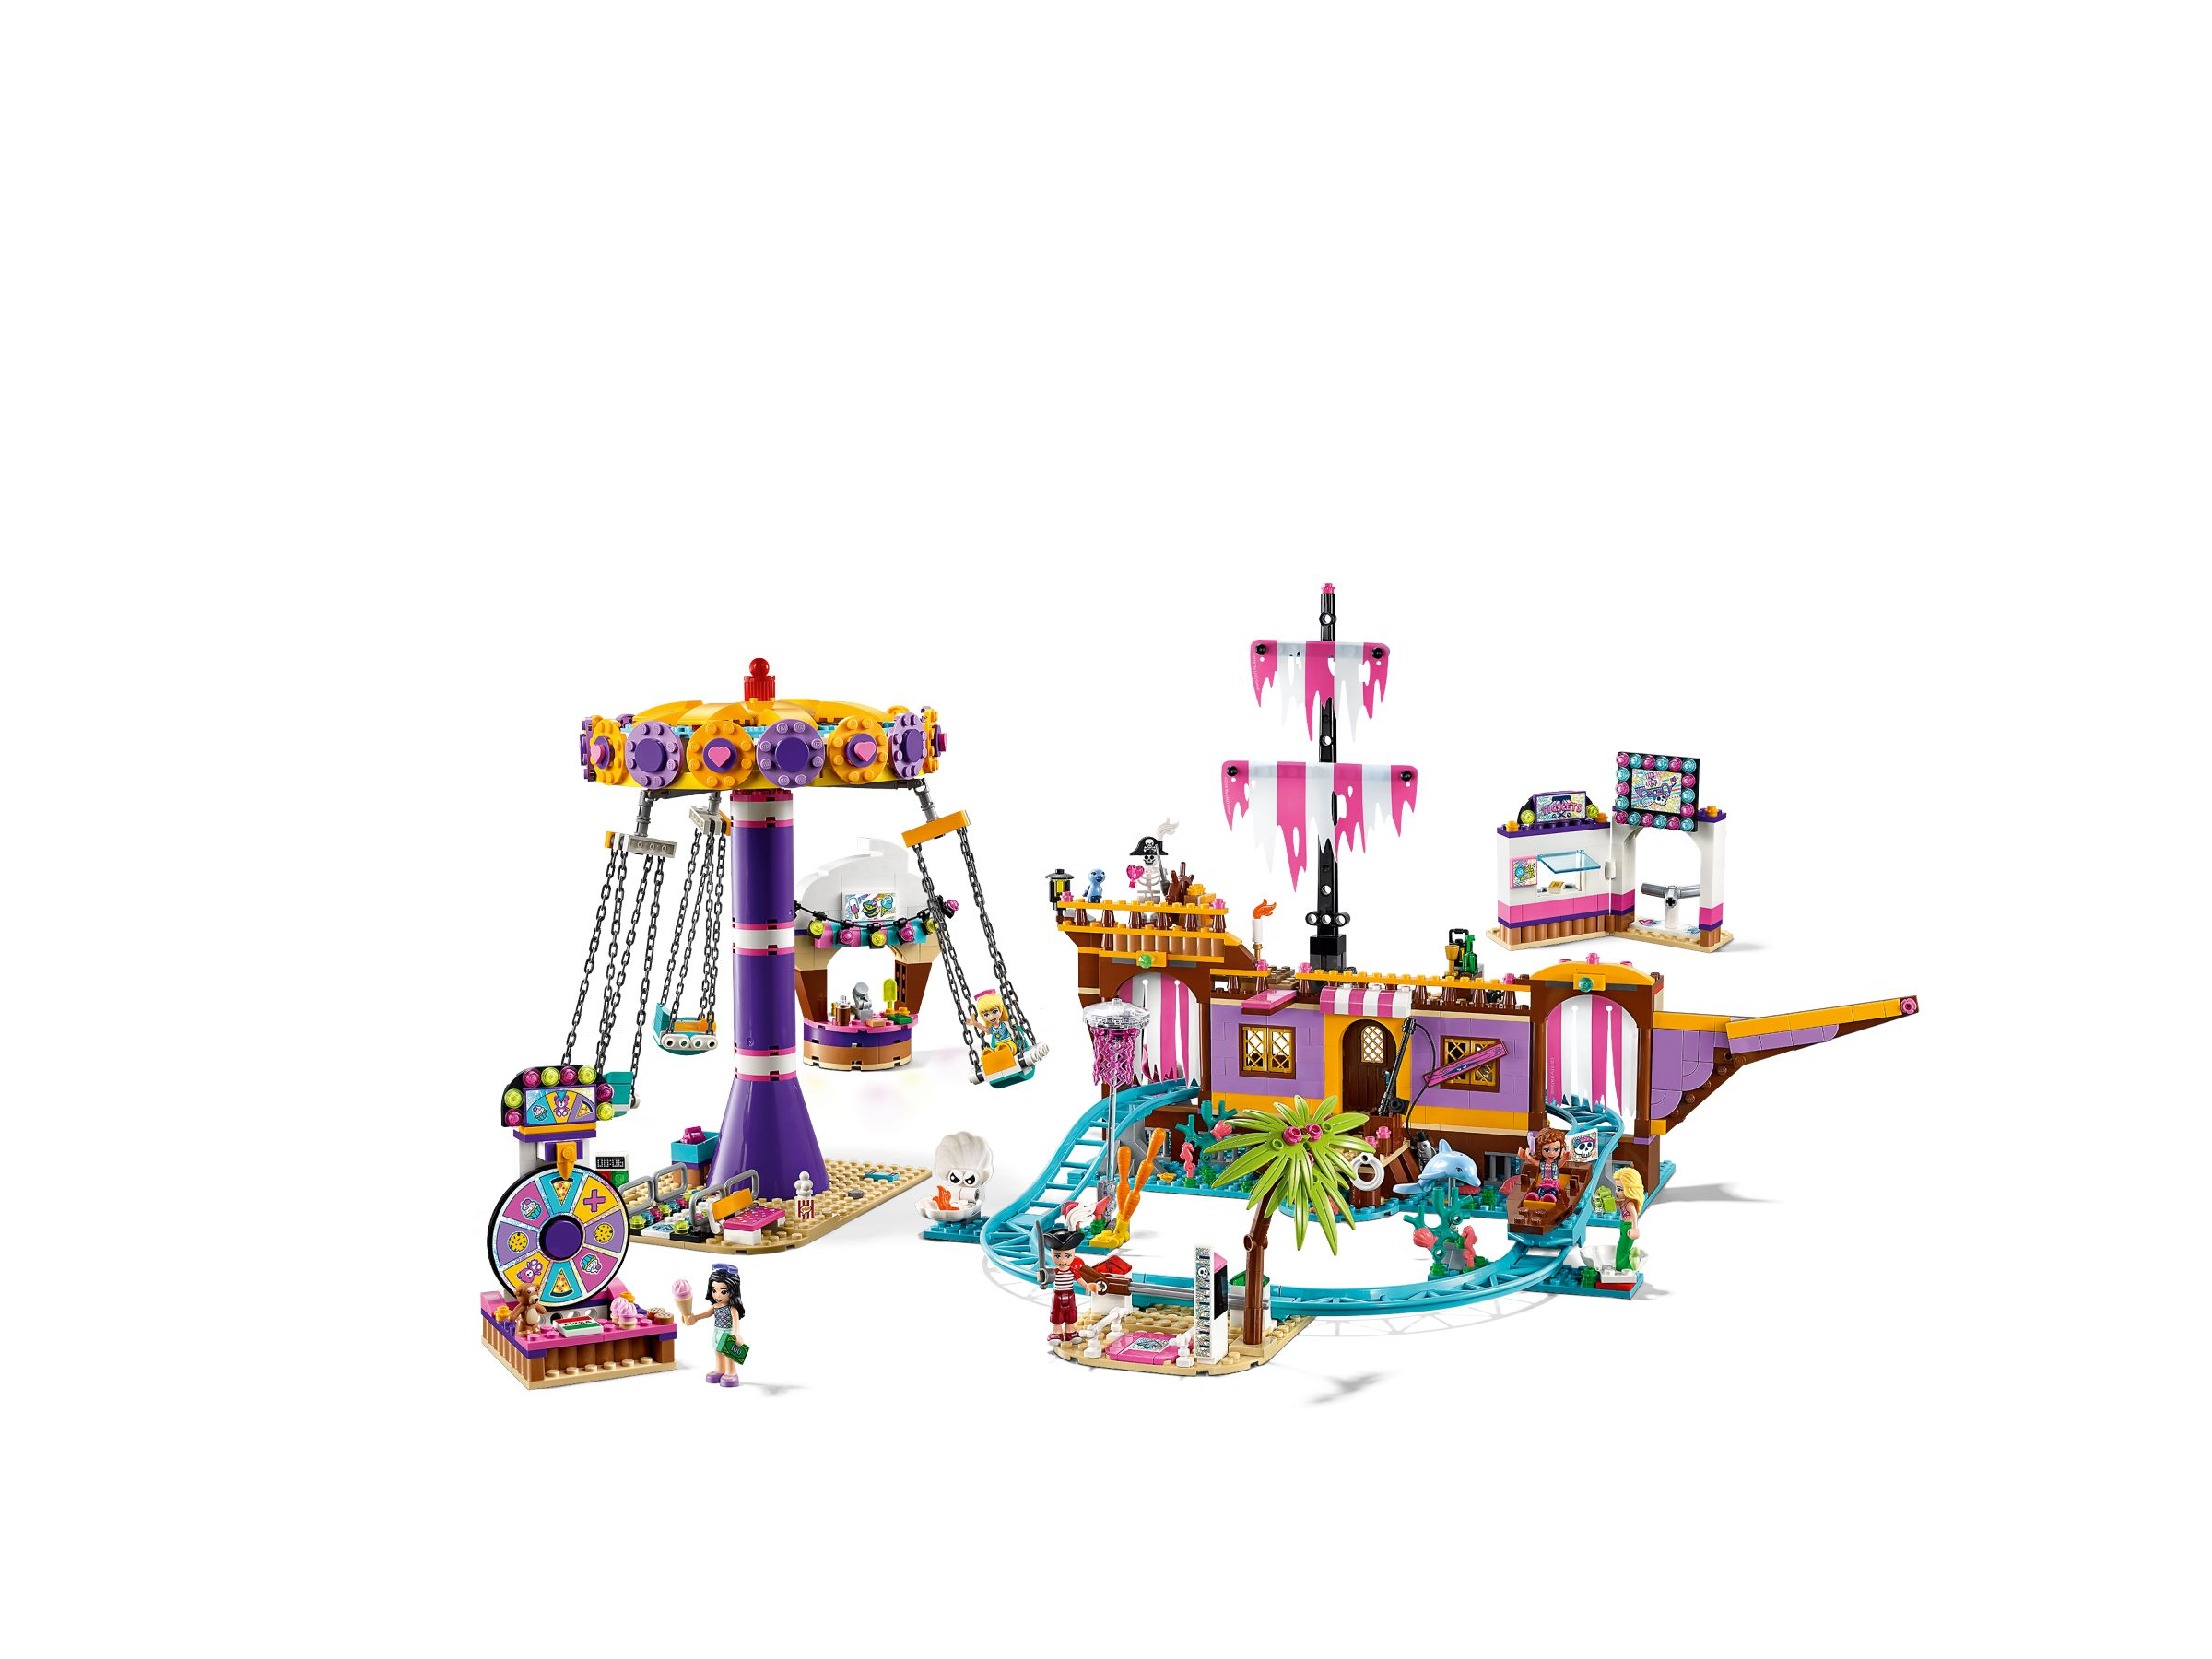 LEGO Friends 41375 Vergnügungspark von Heartlake City LEGO_41375_alt2.jpg